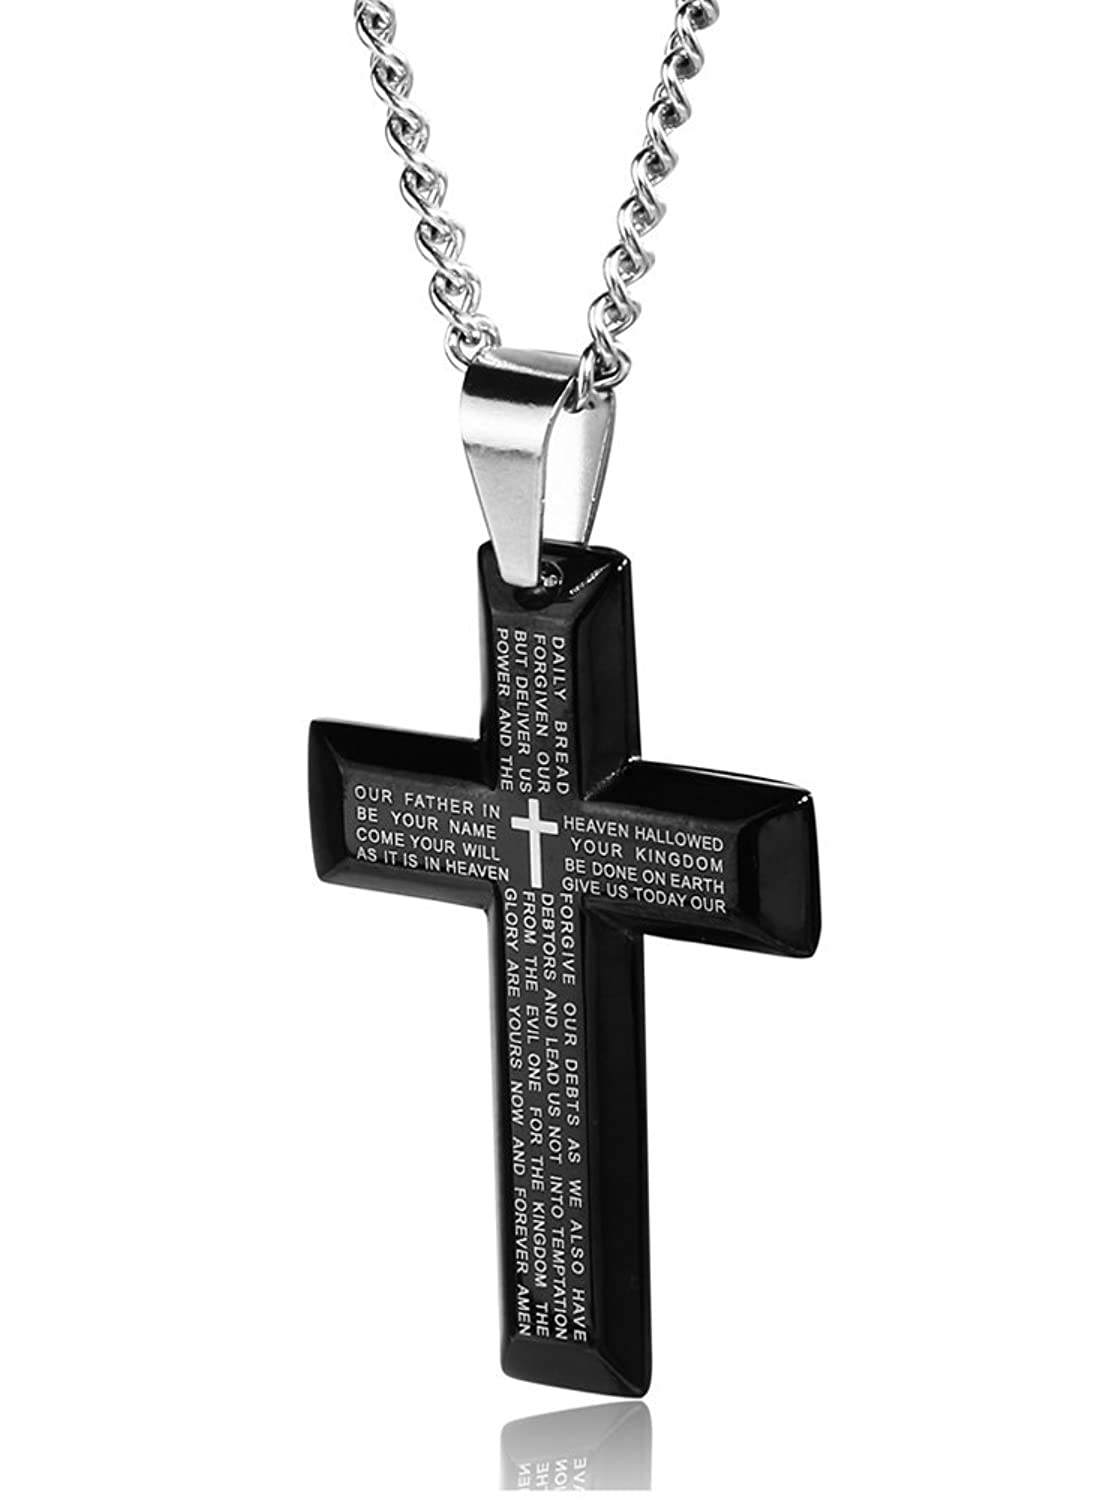 Jstyle Jewelry Men's Stainless Steel Simple Black Cross Pendant Lord's Prayer Necklace 22 24 30 Inch by Jstyle